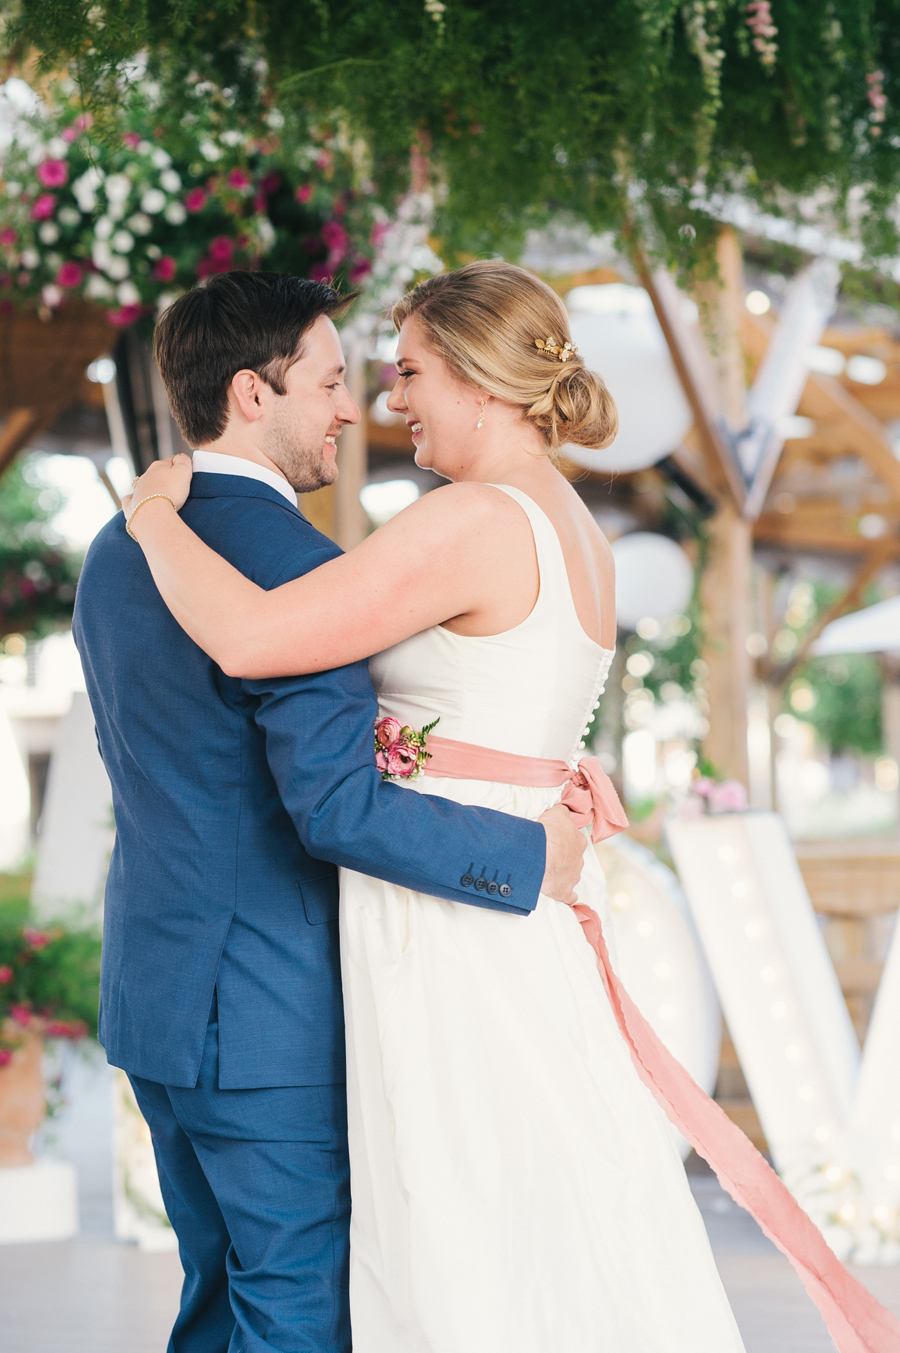 bride and groom's first dance under greenery canopy